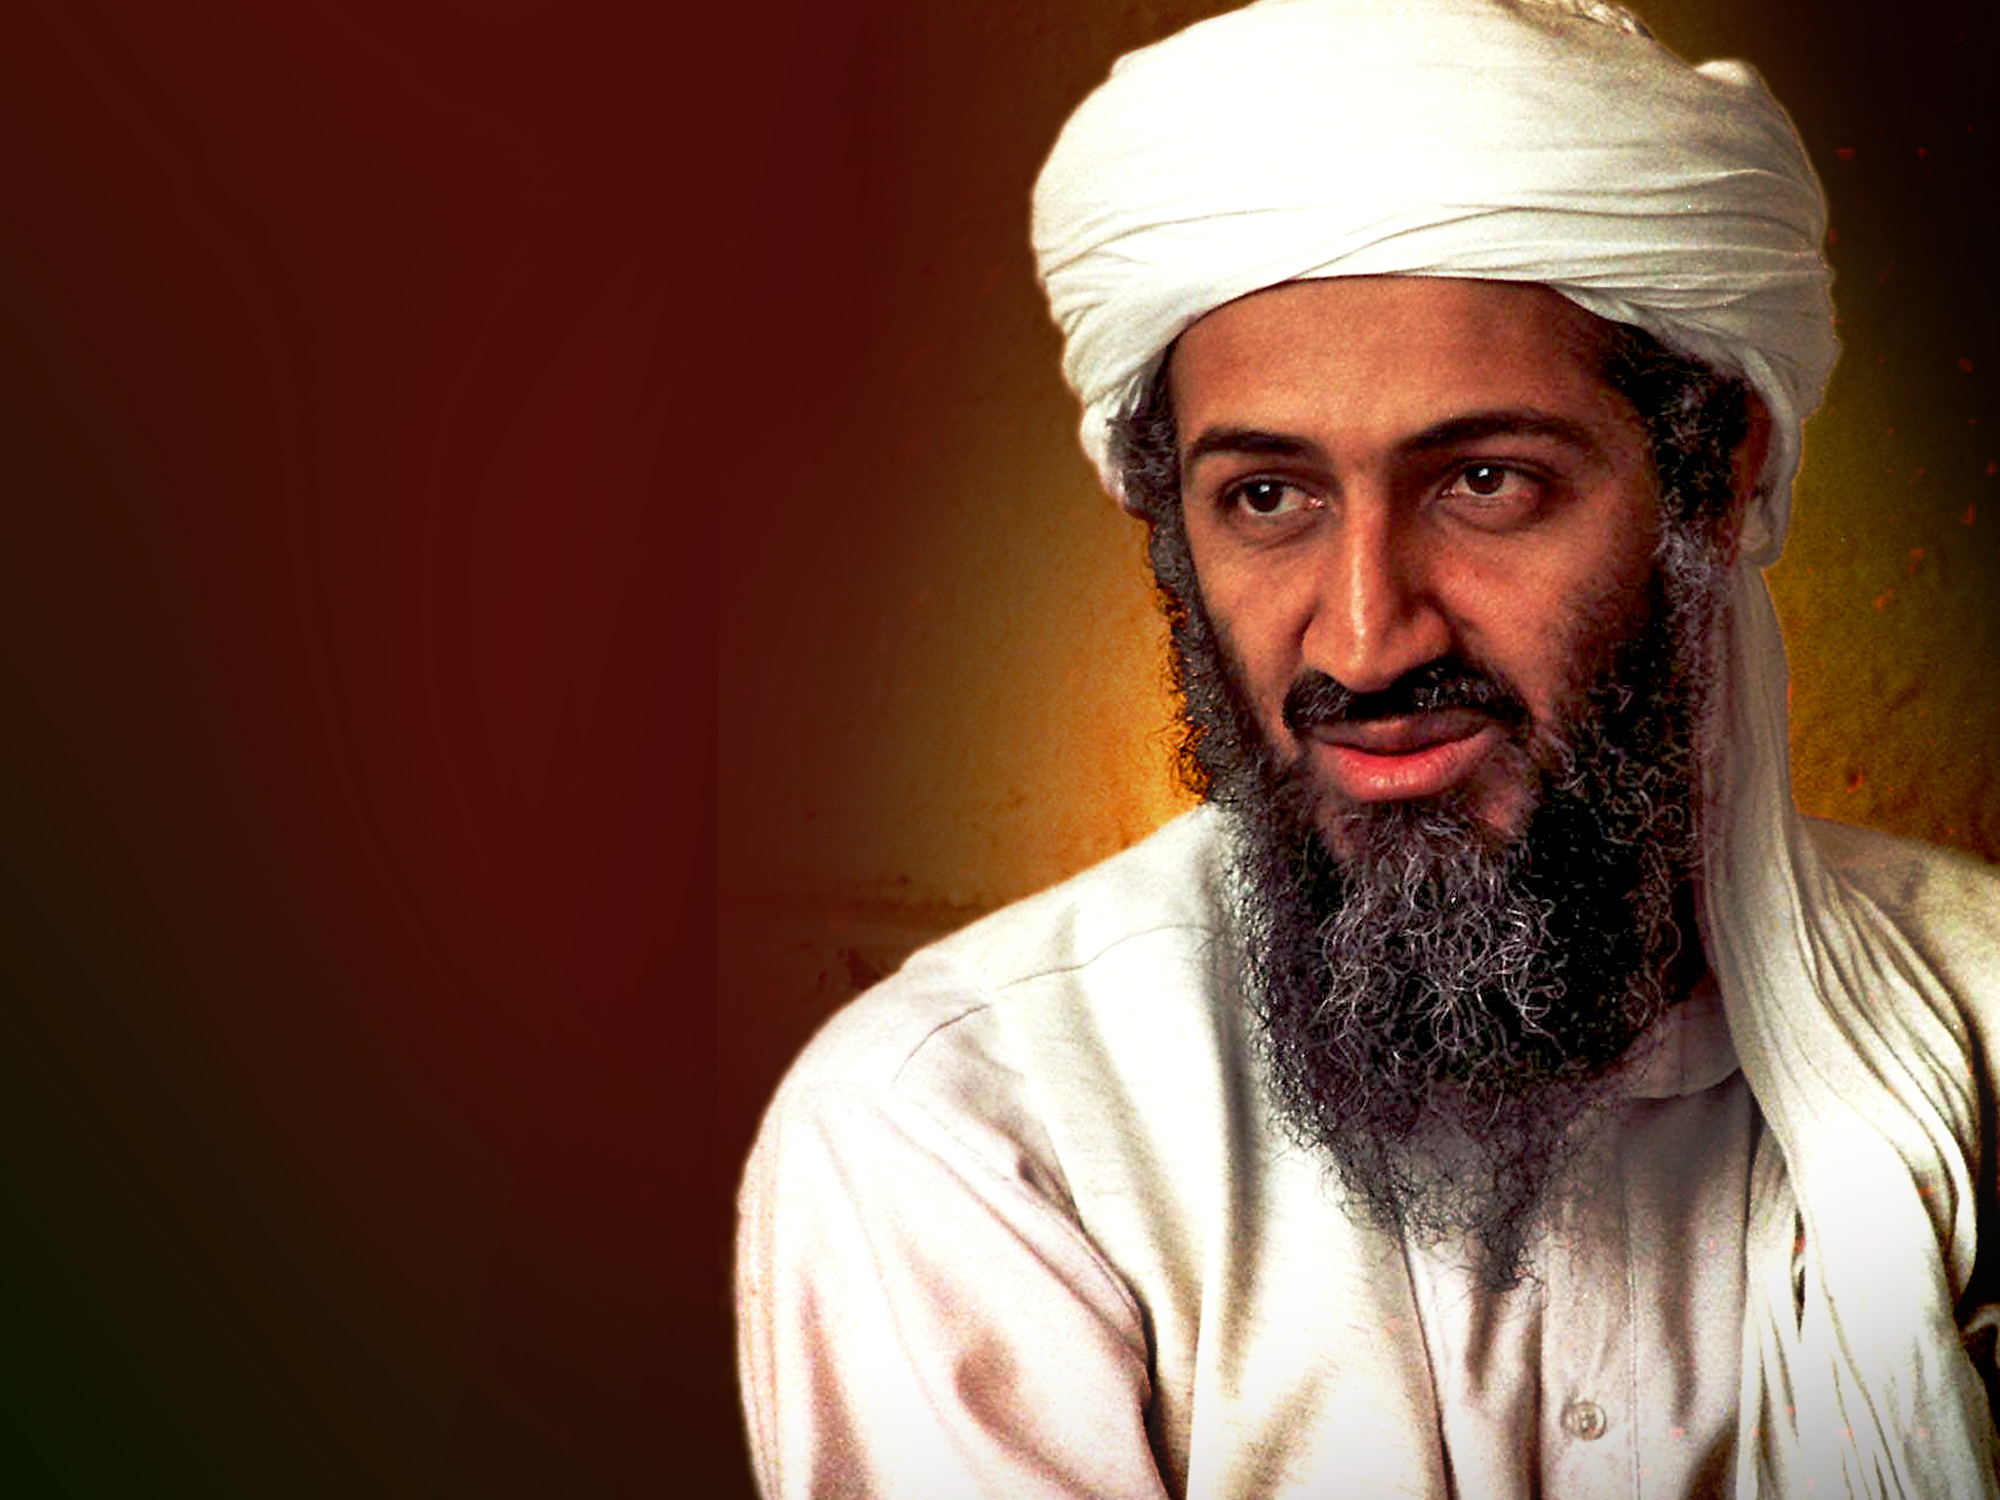 Bin Laden's son Hamza killed in U.S. raid